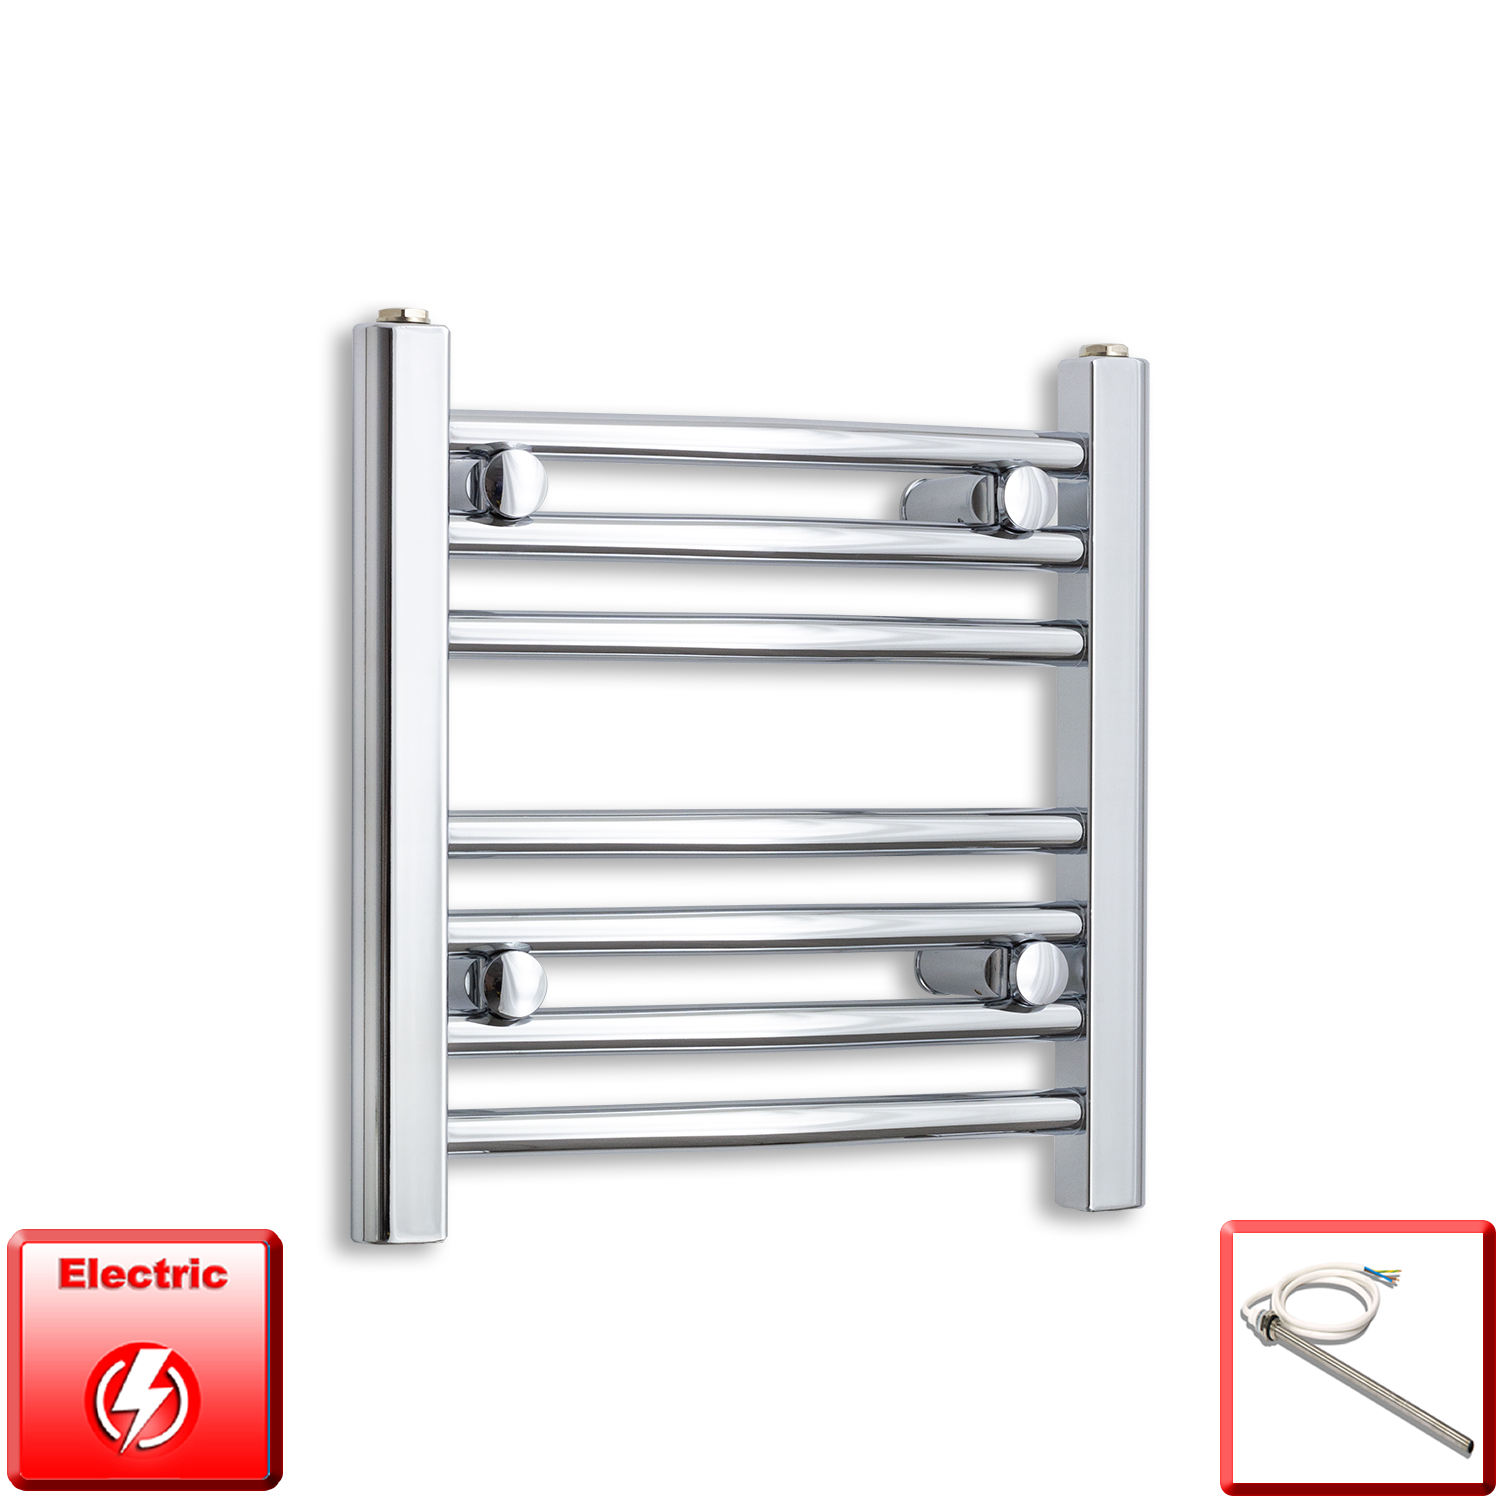 400mm Wide 400mm High Pre-Filled Chrome Electric Towel Rail Radiator With Single Heat Element